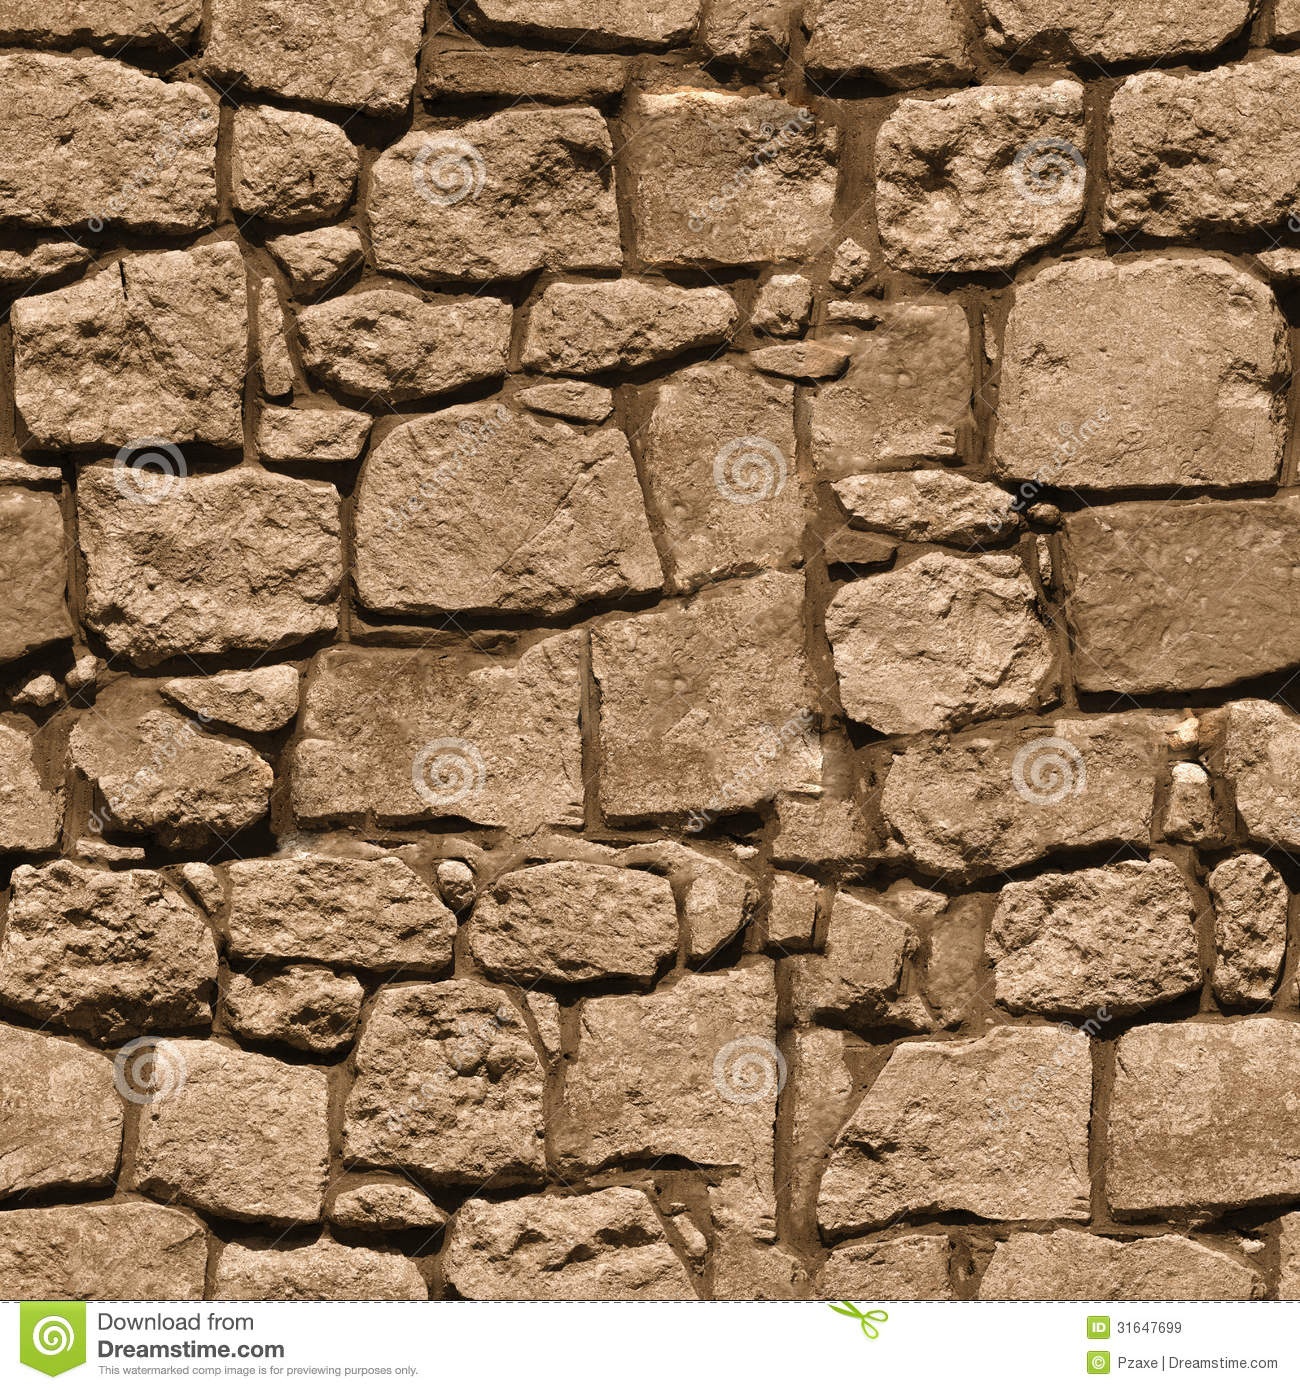 Textured stone clipart.